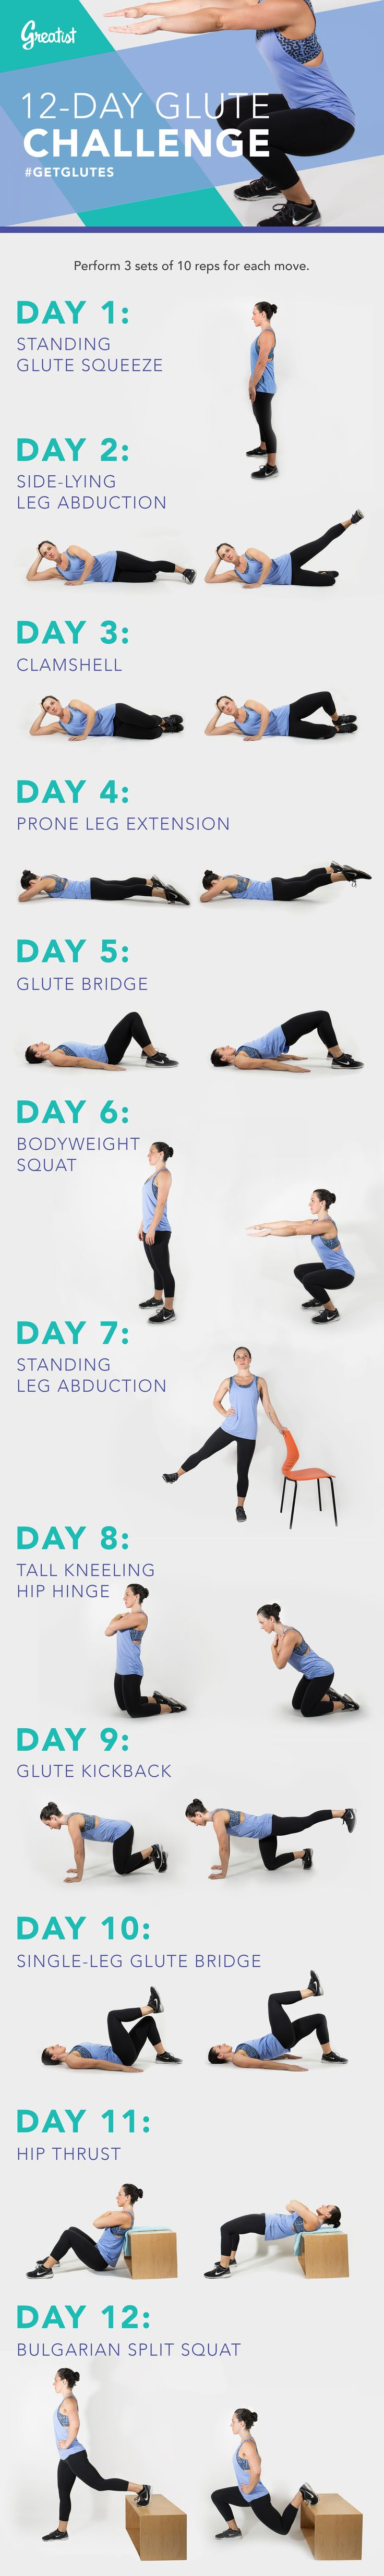 jewellry online Join Greatist  39 s 12 Day Glute Challenge    Are you ready to  getglutes  Join our 12 day challenge to build strong glutes that will help you throughout your everyday activities   glutes  workout  fitness  exercises  greatist